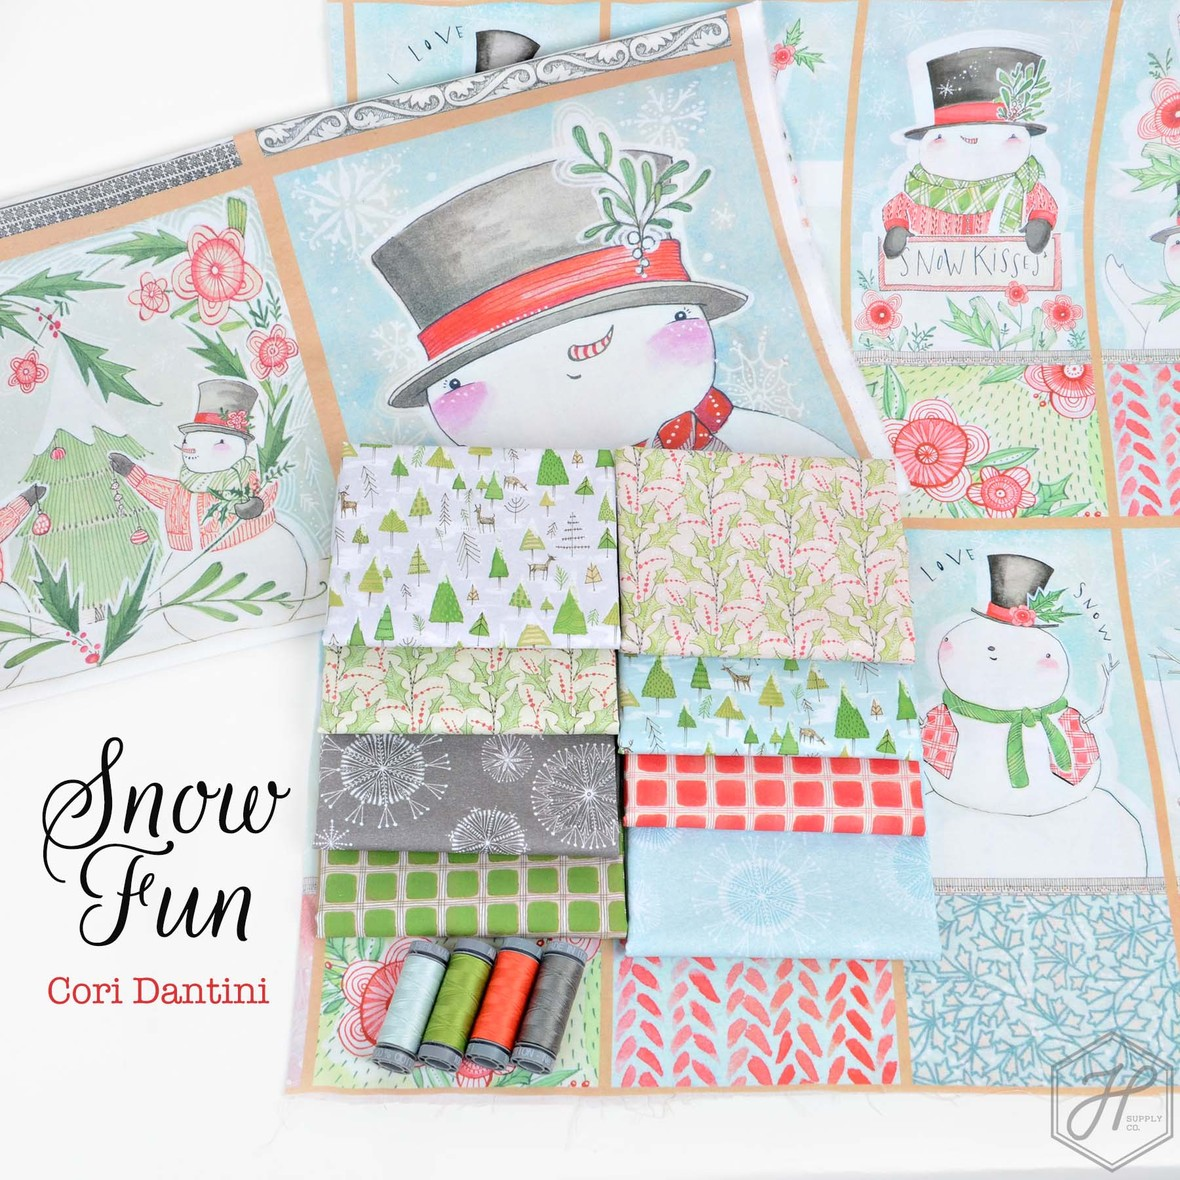 Snow Fun Fabric Poster Cori Dantini for Blend at Hawthorne Supply Co